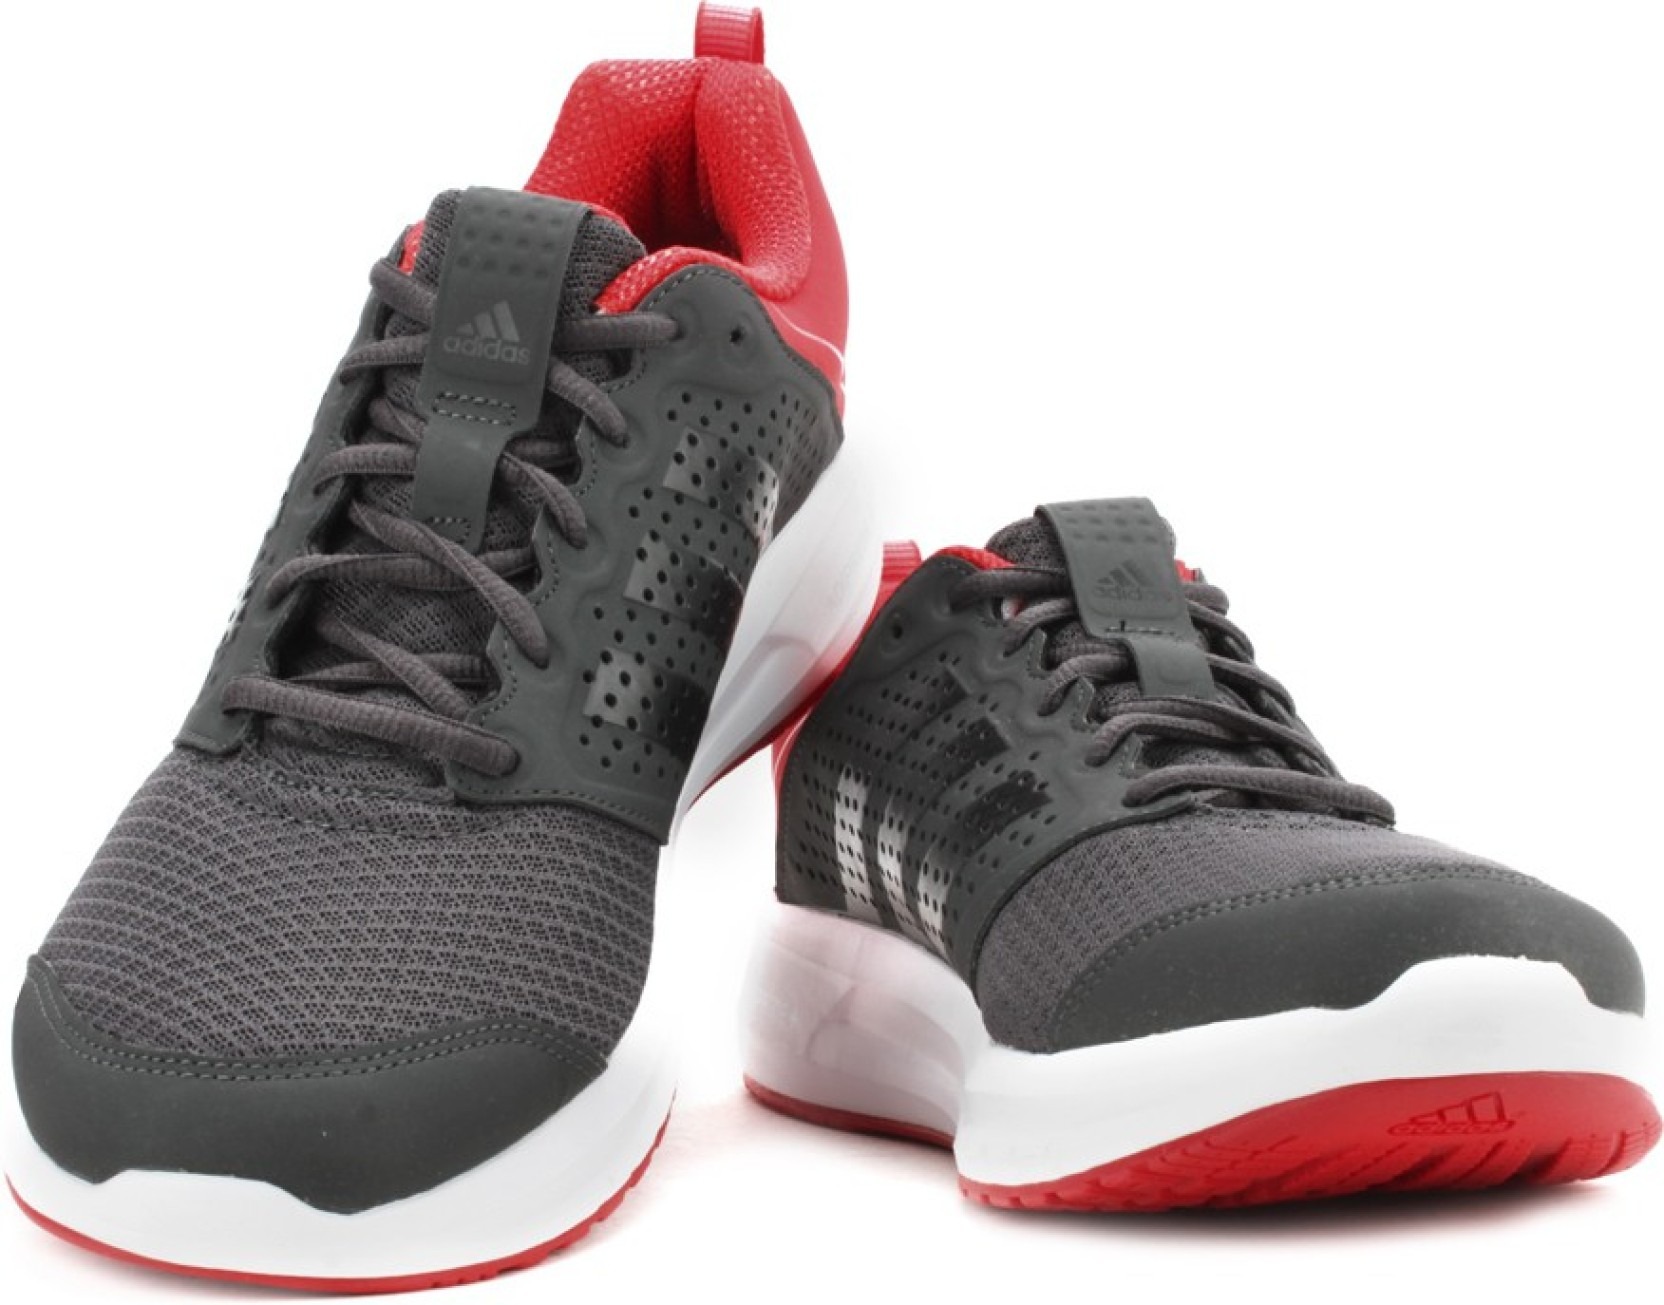 Adidas Shoes With Price Flipkart